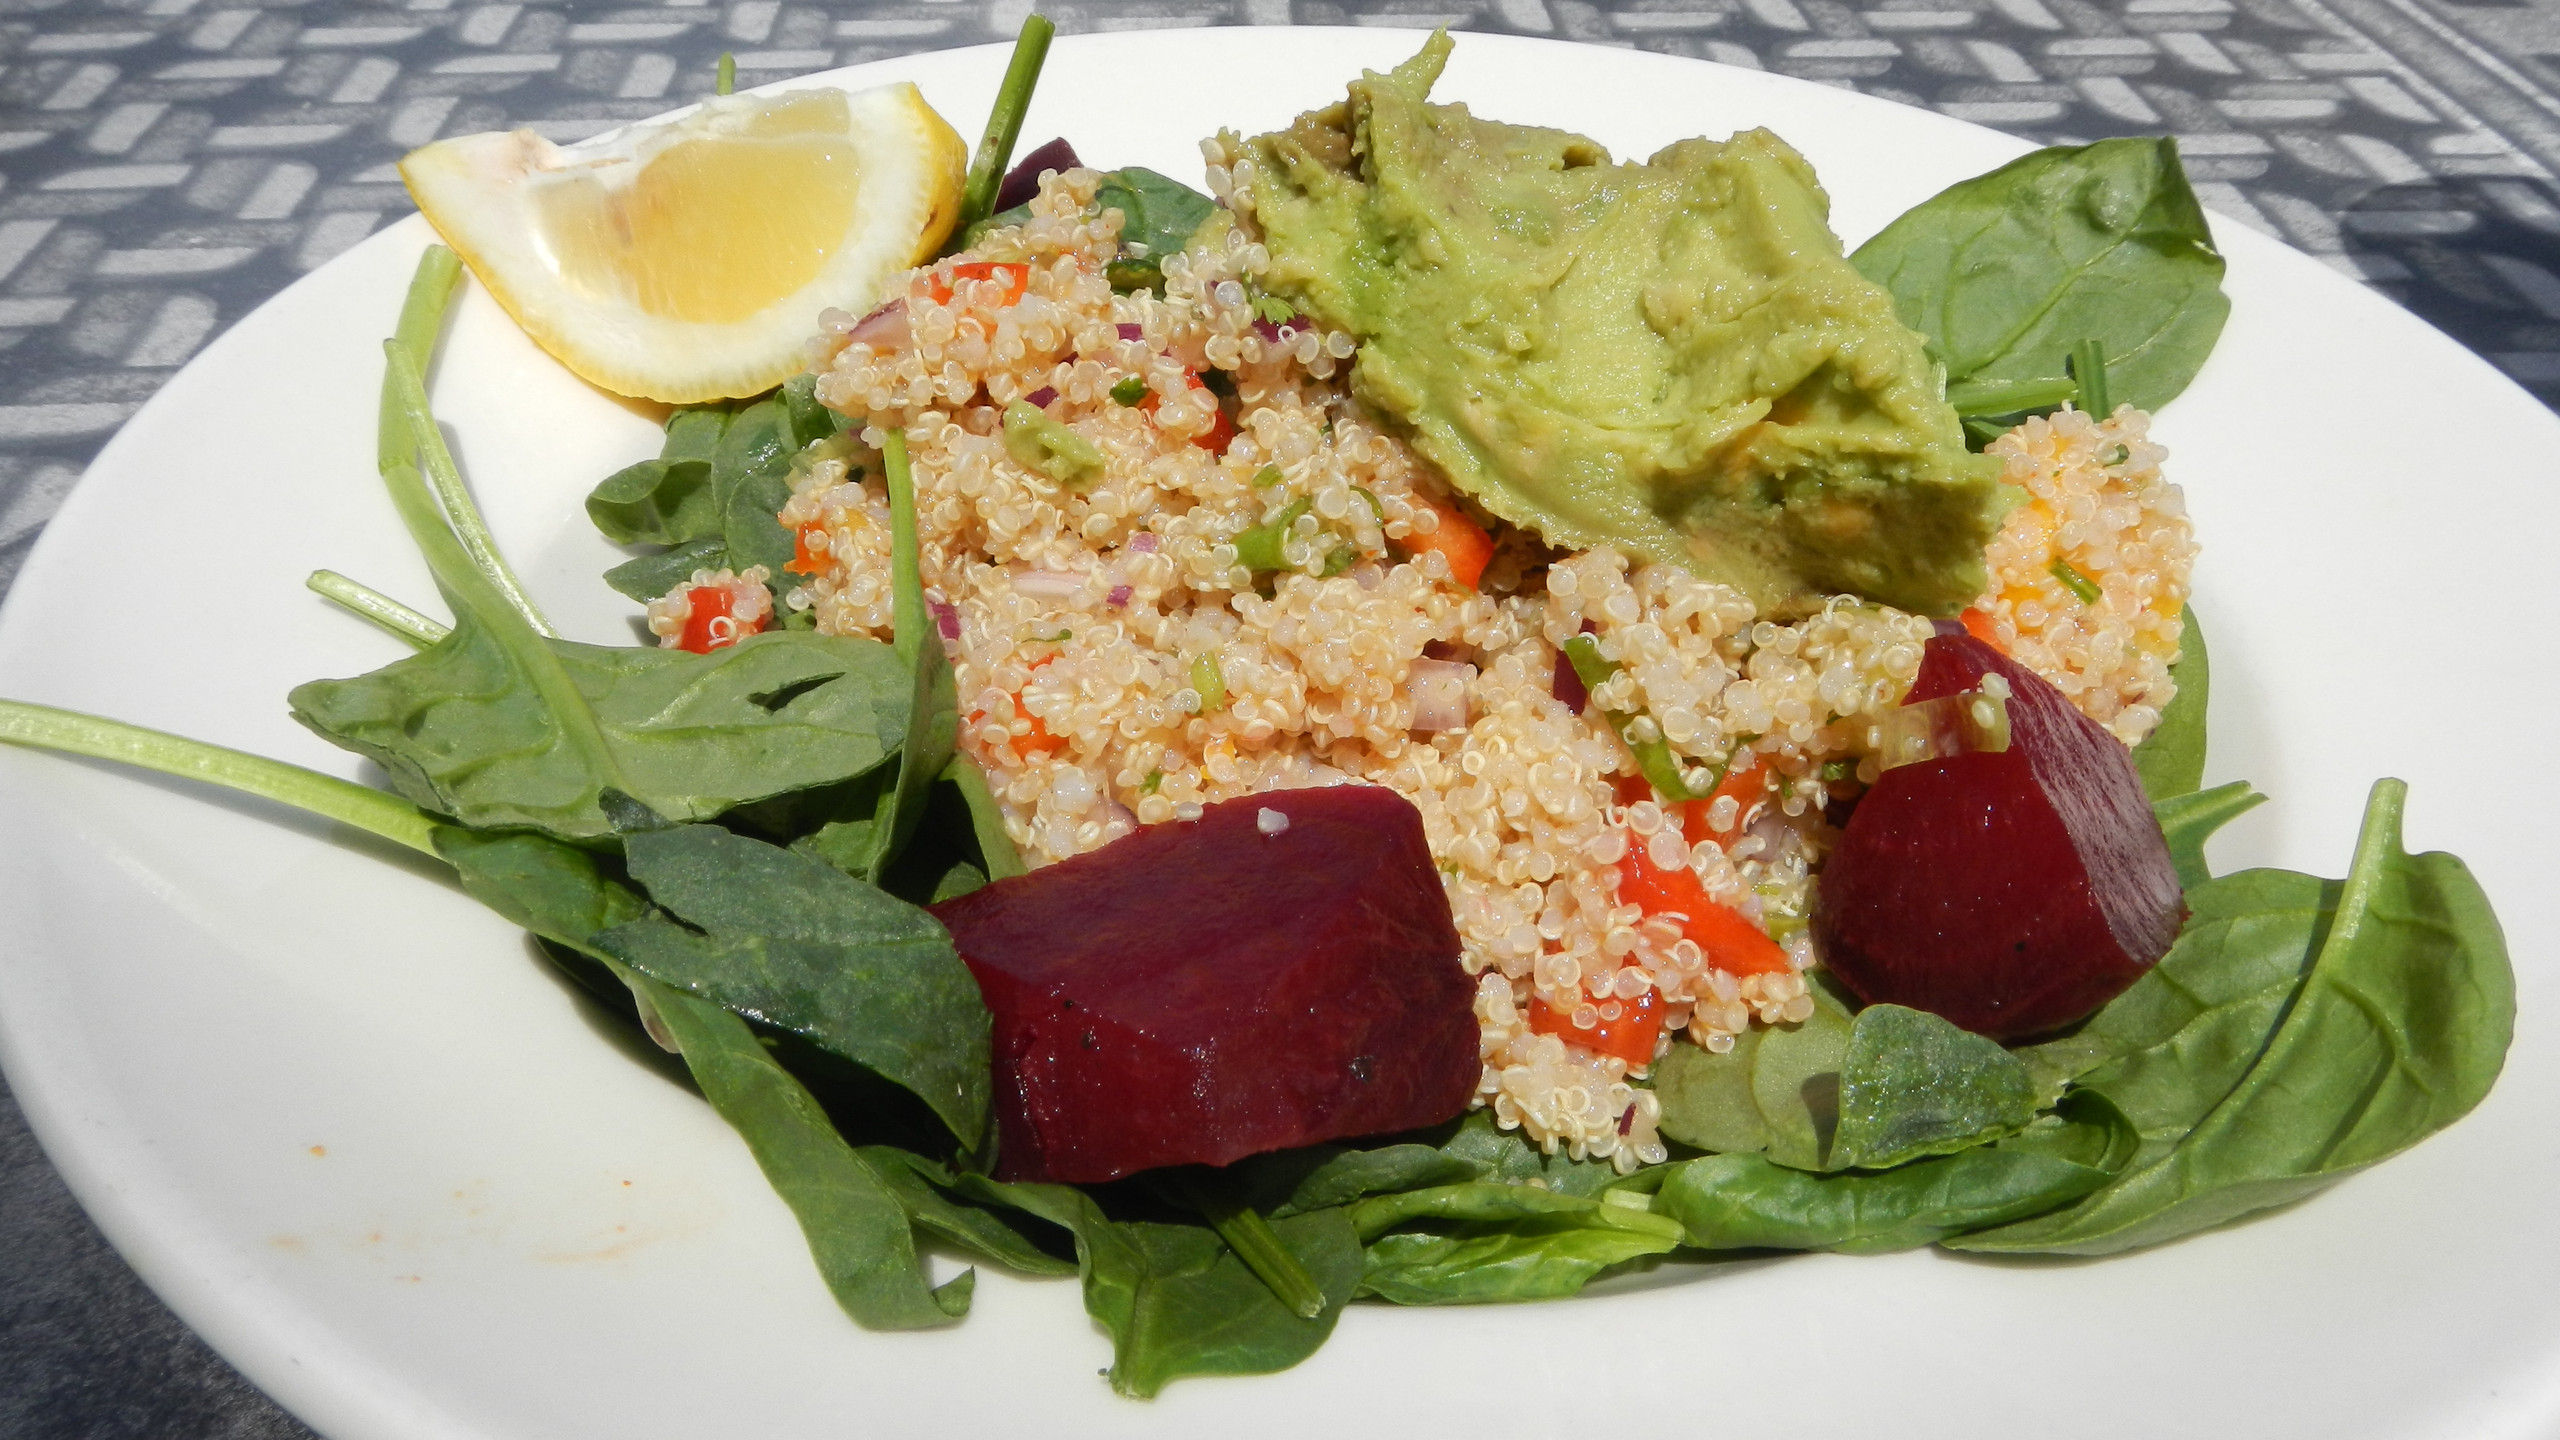 The Quinoa Salad at Scallions